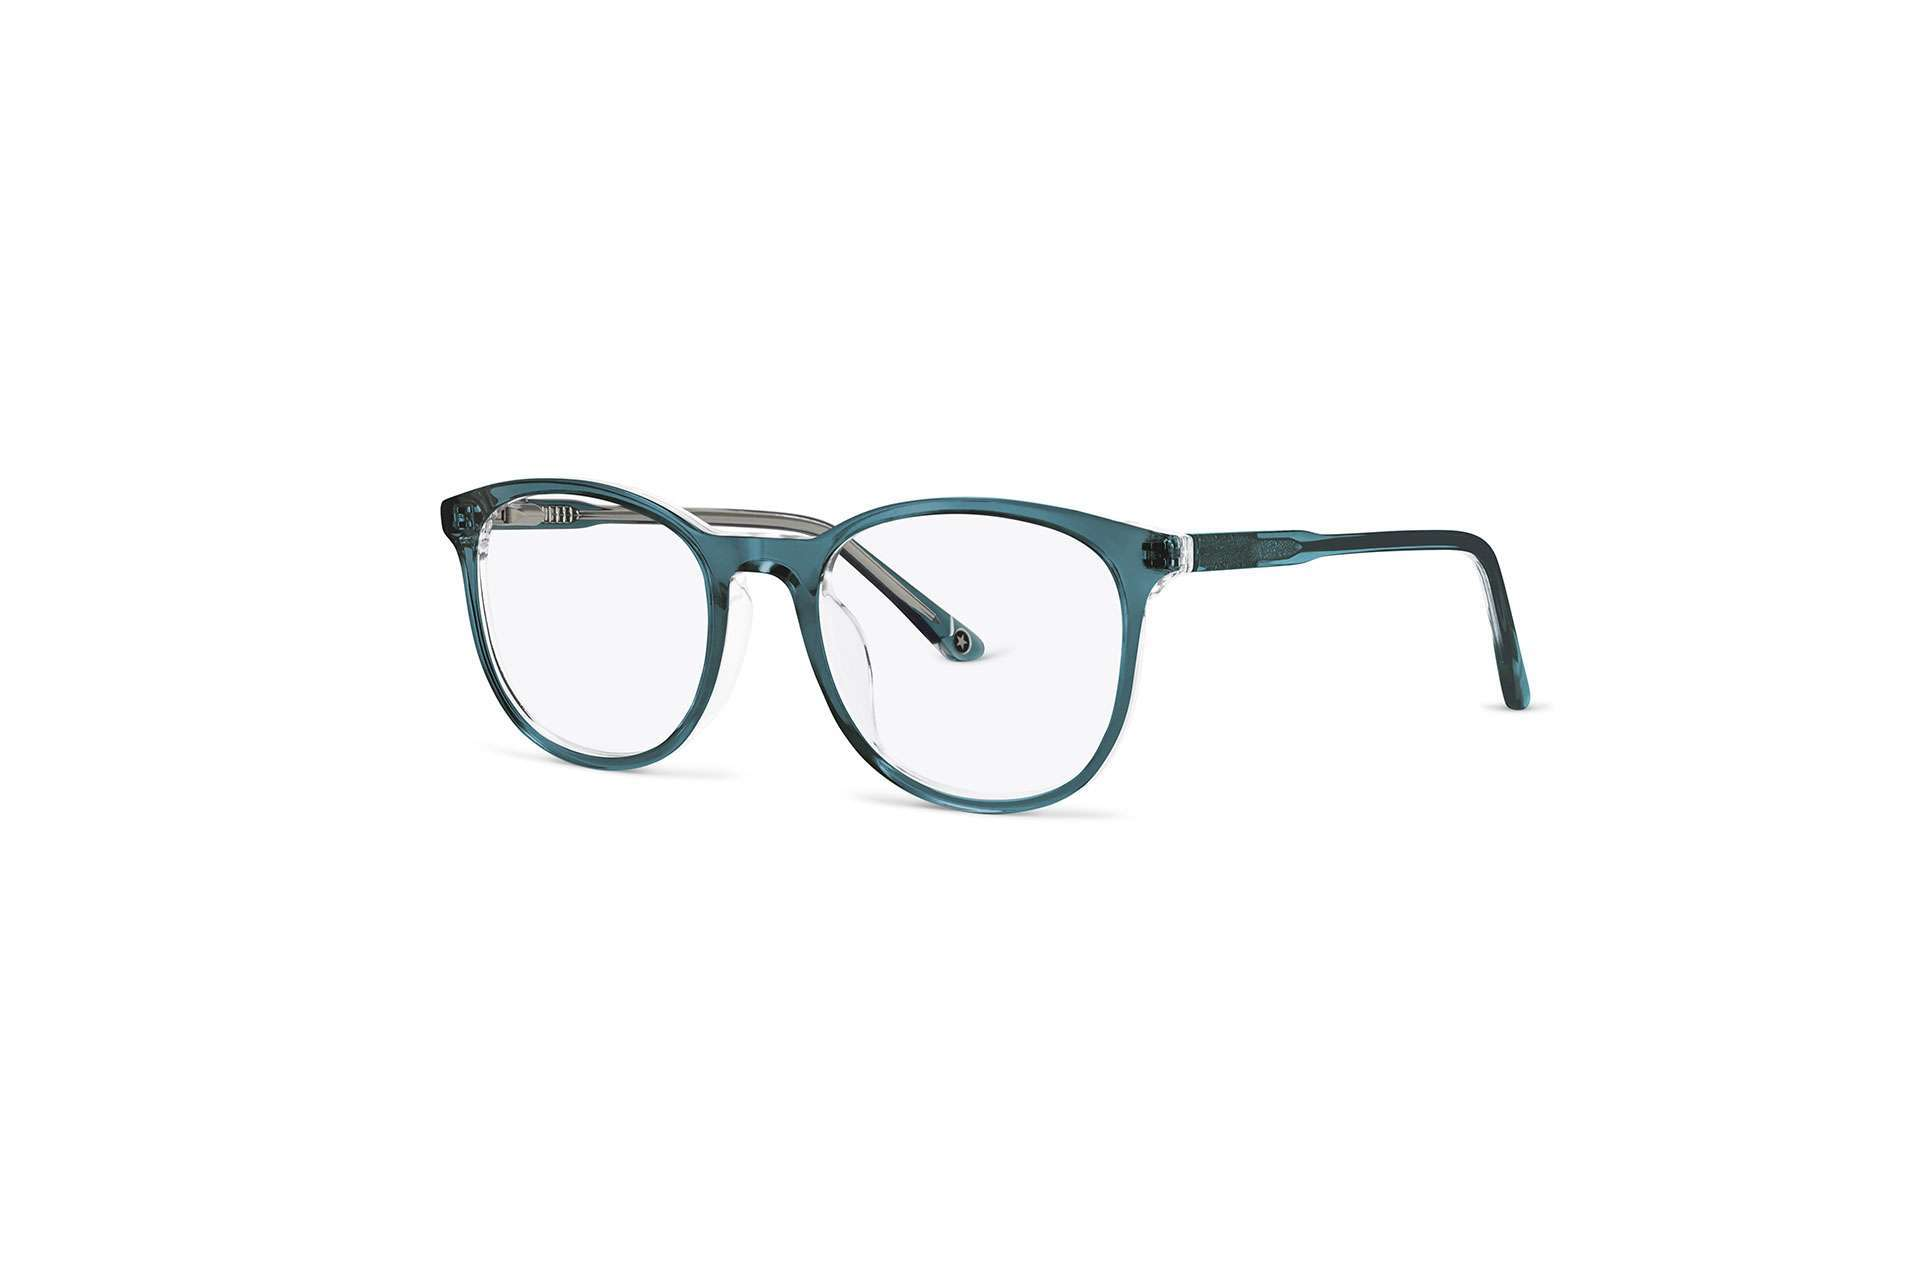 Ecommerce glasses with transparency retouching after